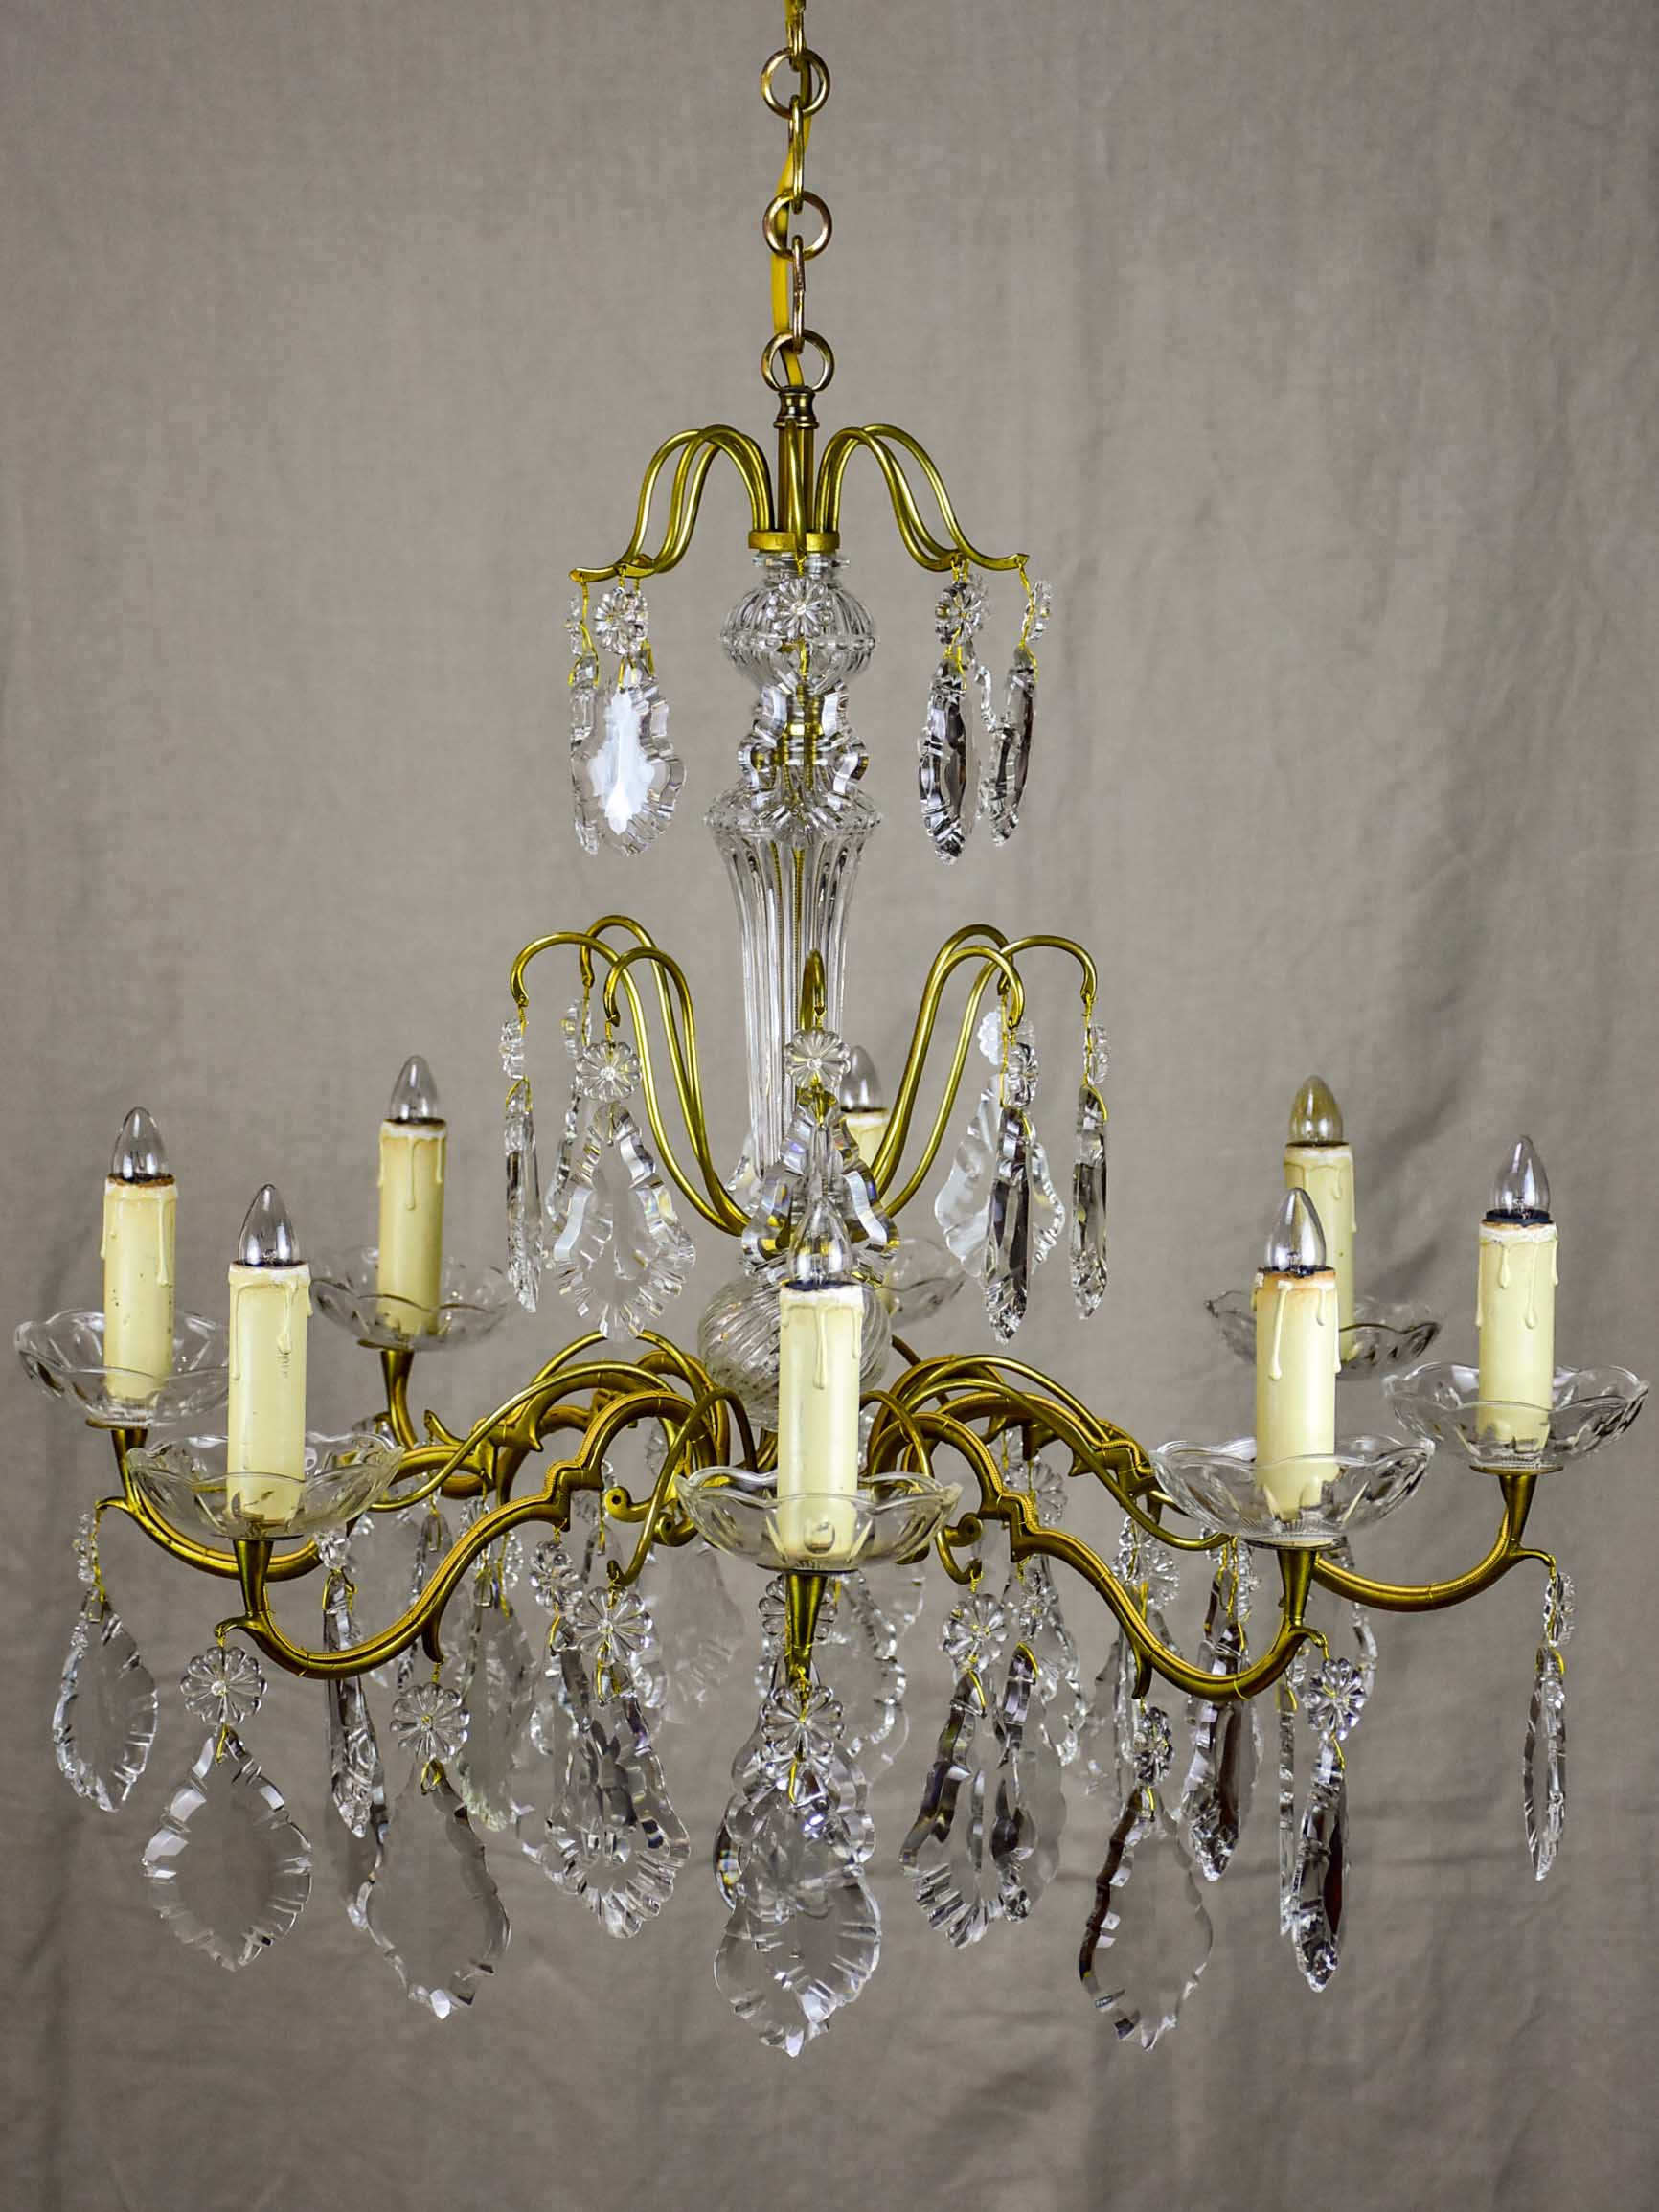 Antique French crystal chandelier - 8 lights